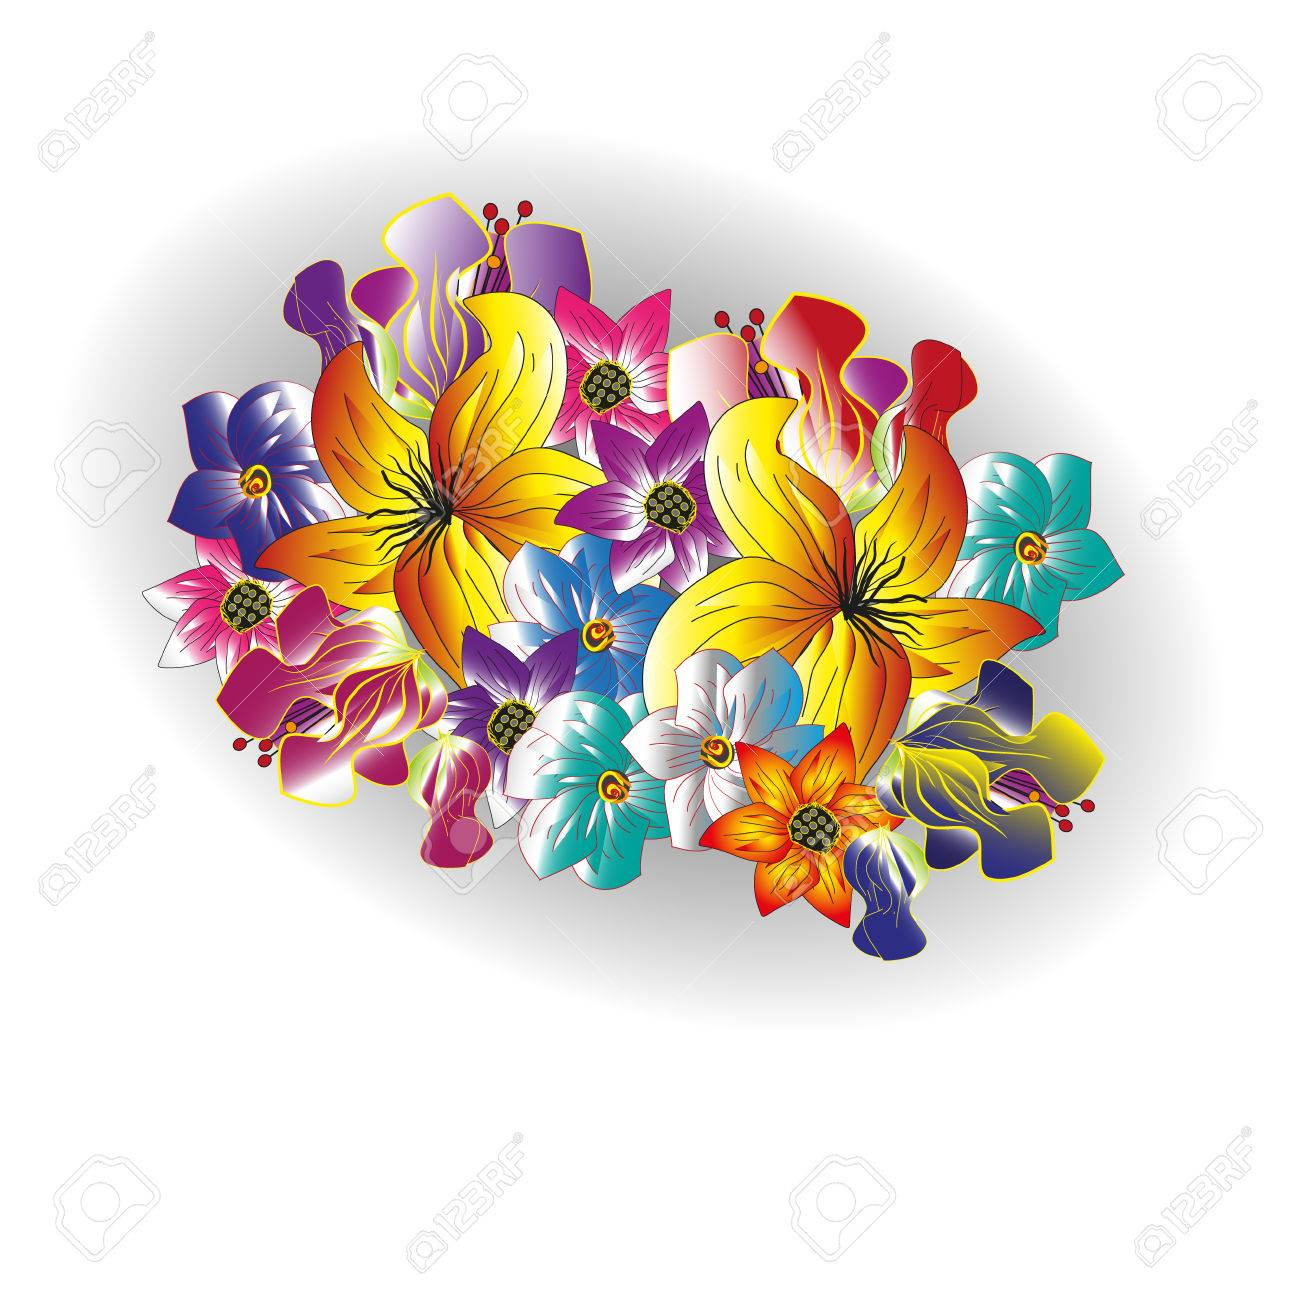 Bouquet clipart summer flower. Drawing at getdrawings com